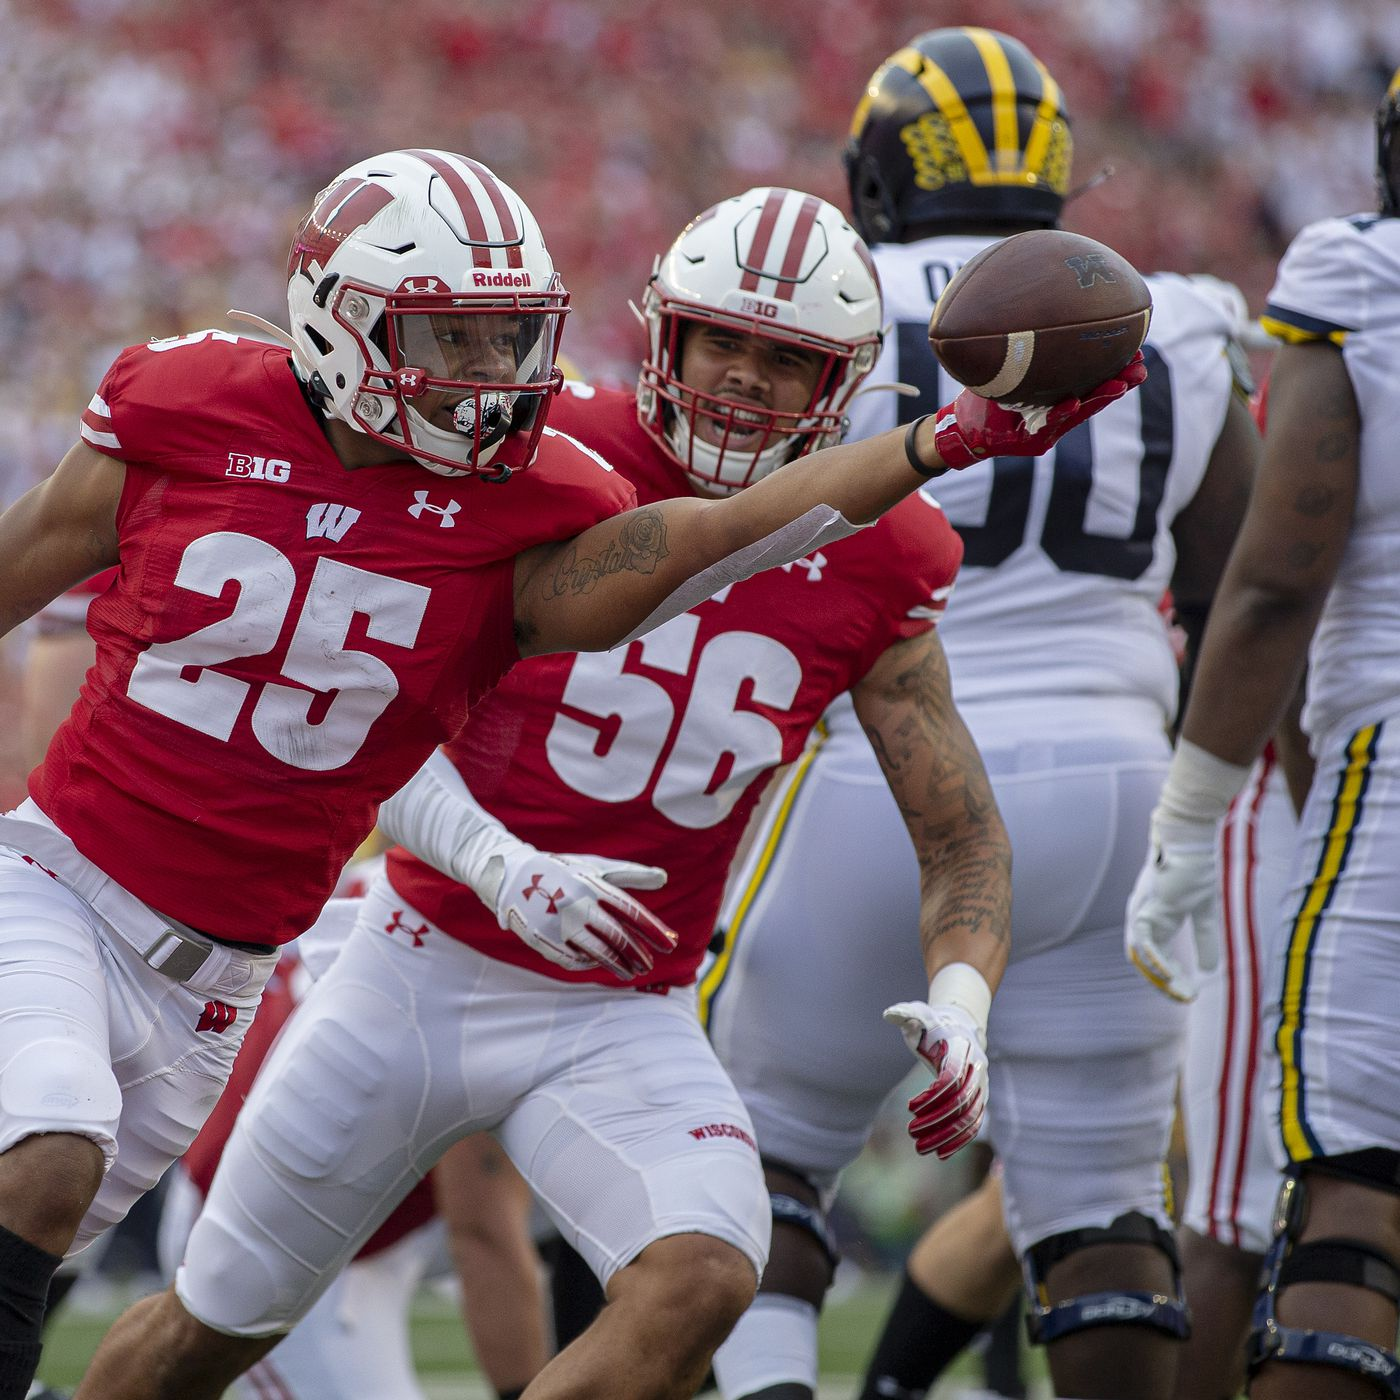 Big bet on michigan game today betting zone horse tips and facts